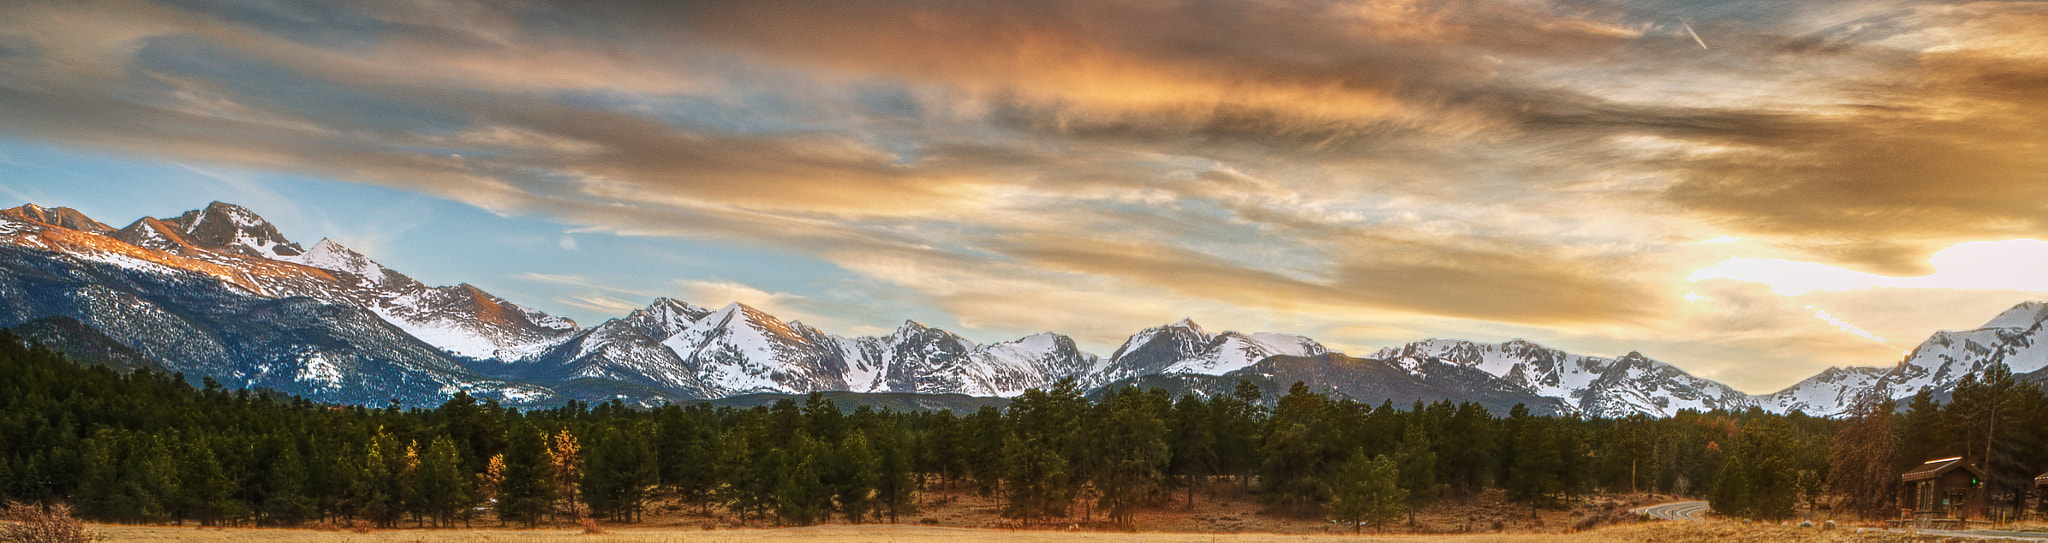 Photograph Colorado Rockies by Adam Pinnell on 500px